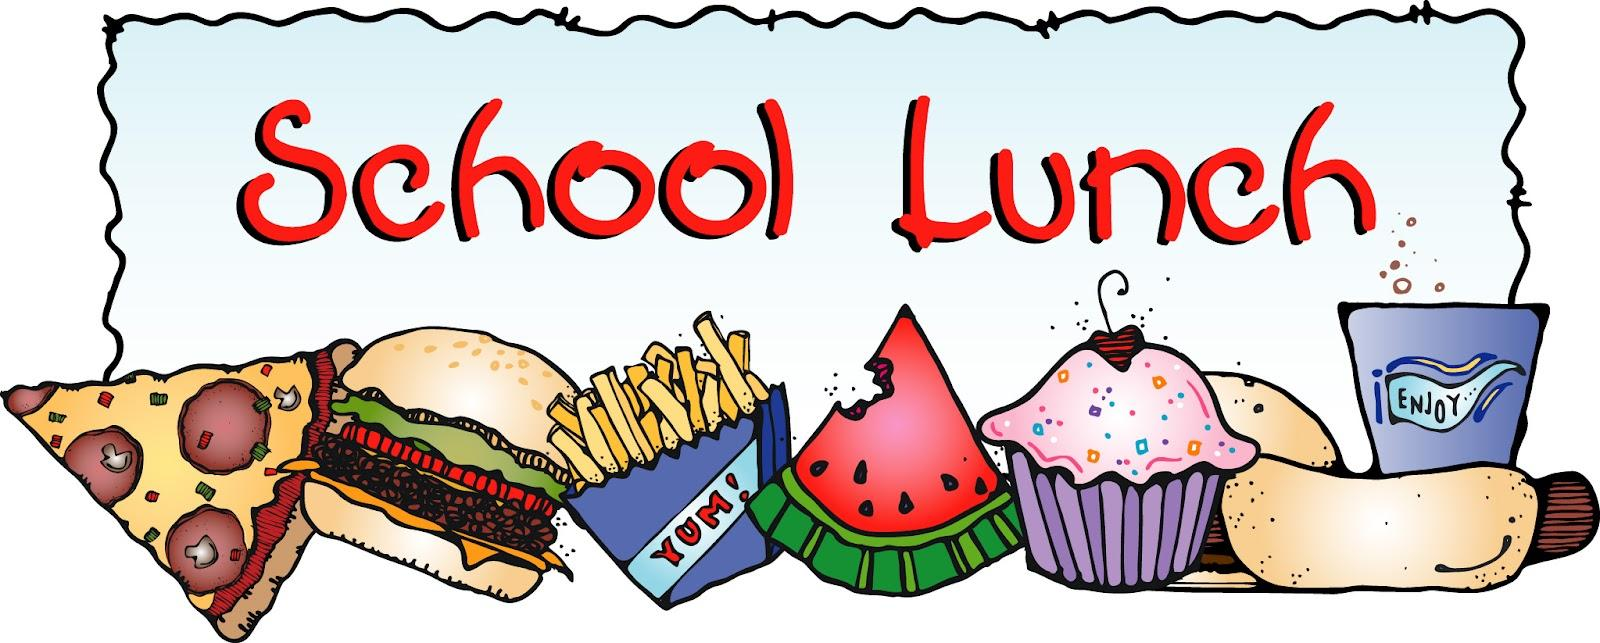 School Lunch http://clipartix.com/lunch-clipart/